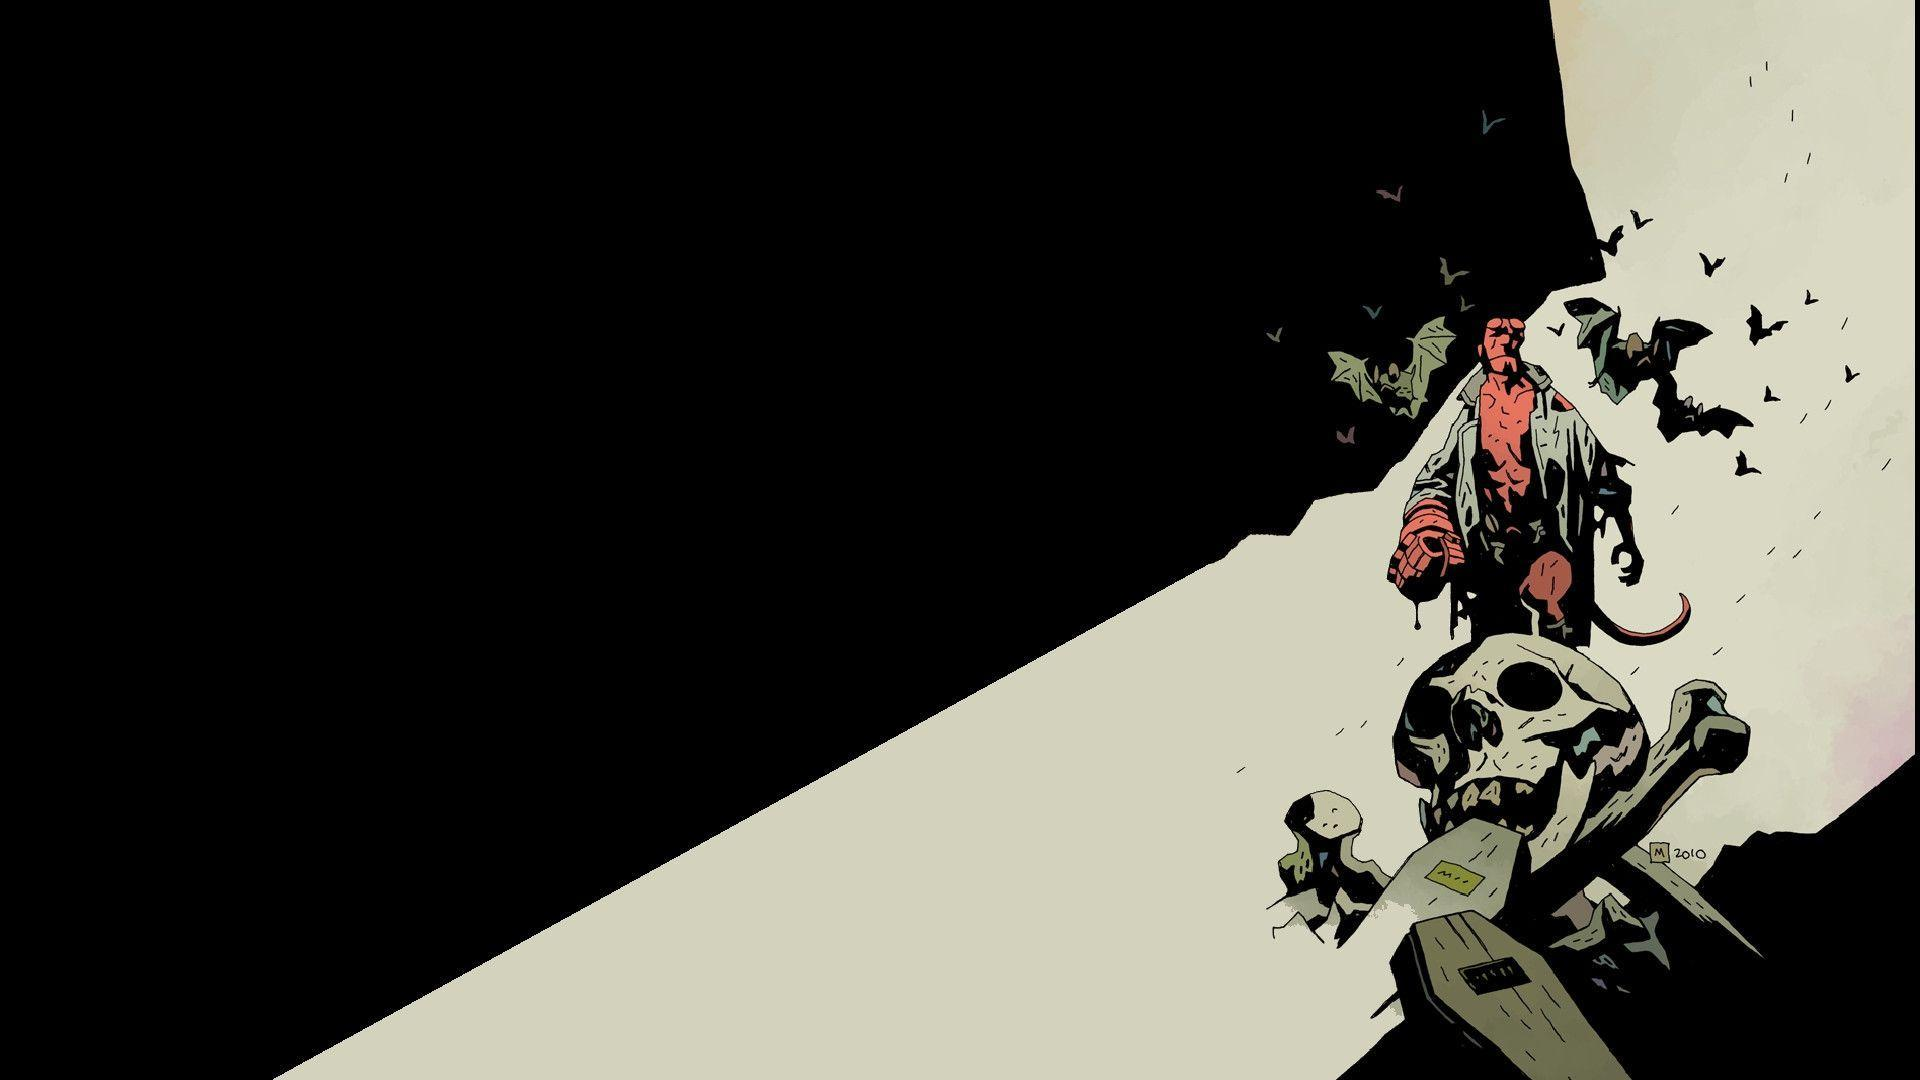 84 Hellboy Wallpapers | Hellboy Backgrounds Page 3